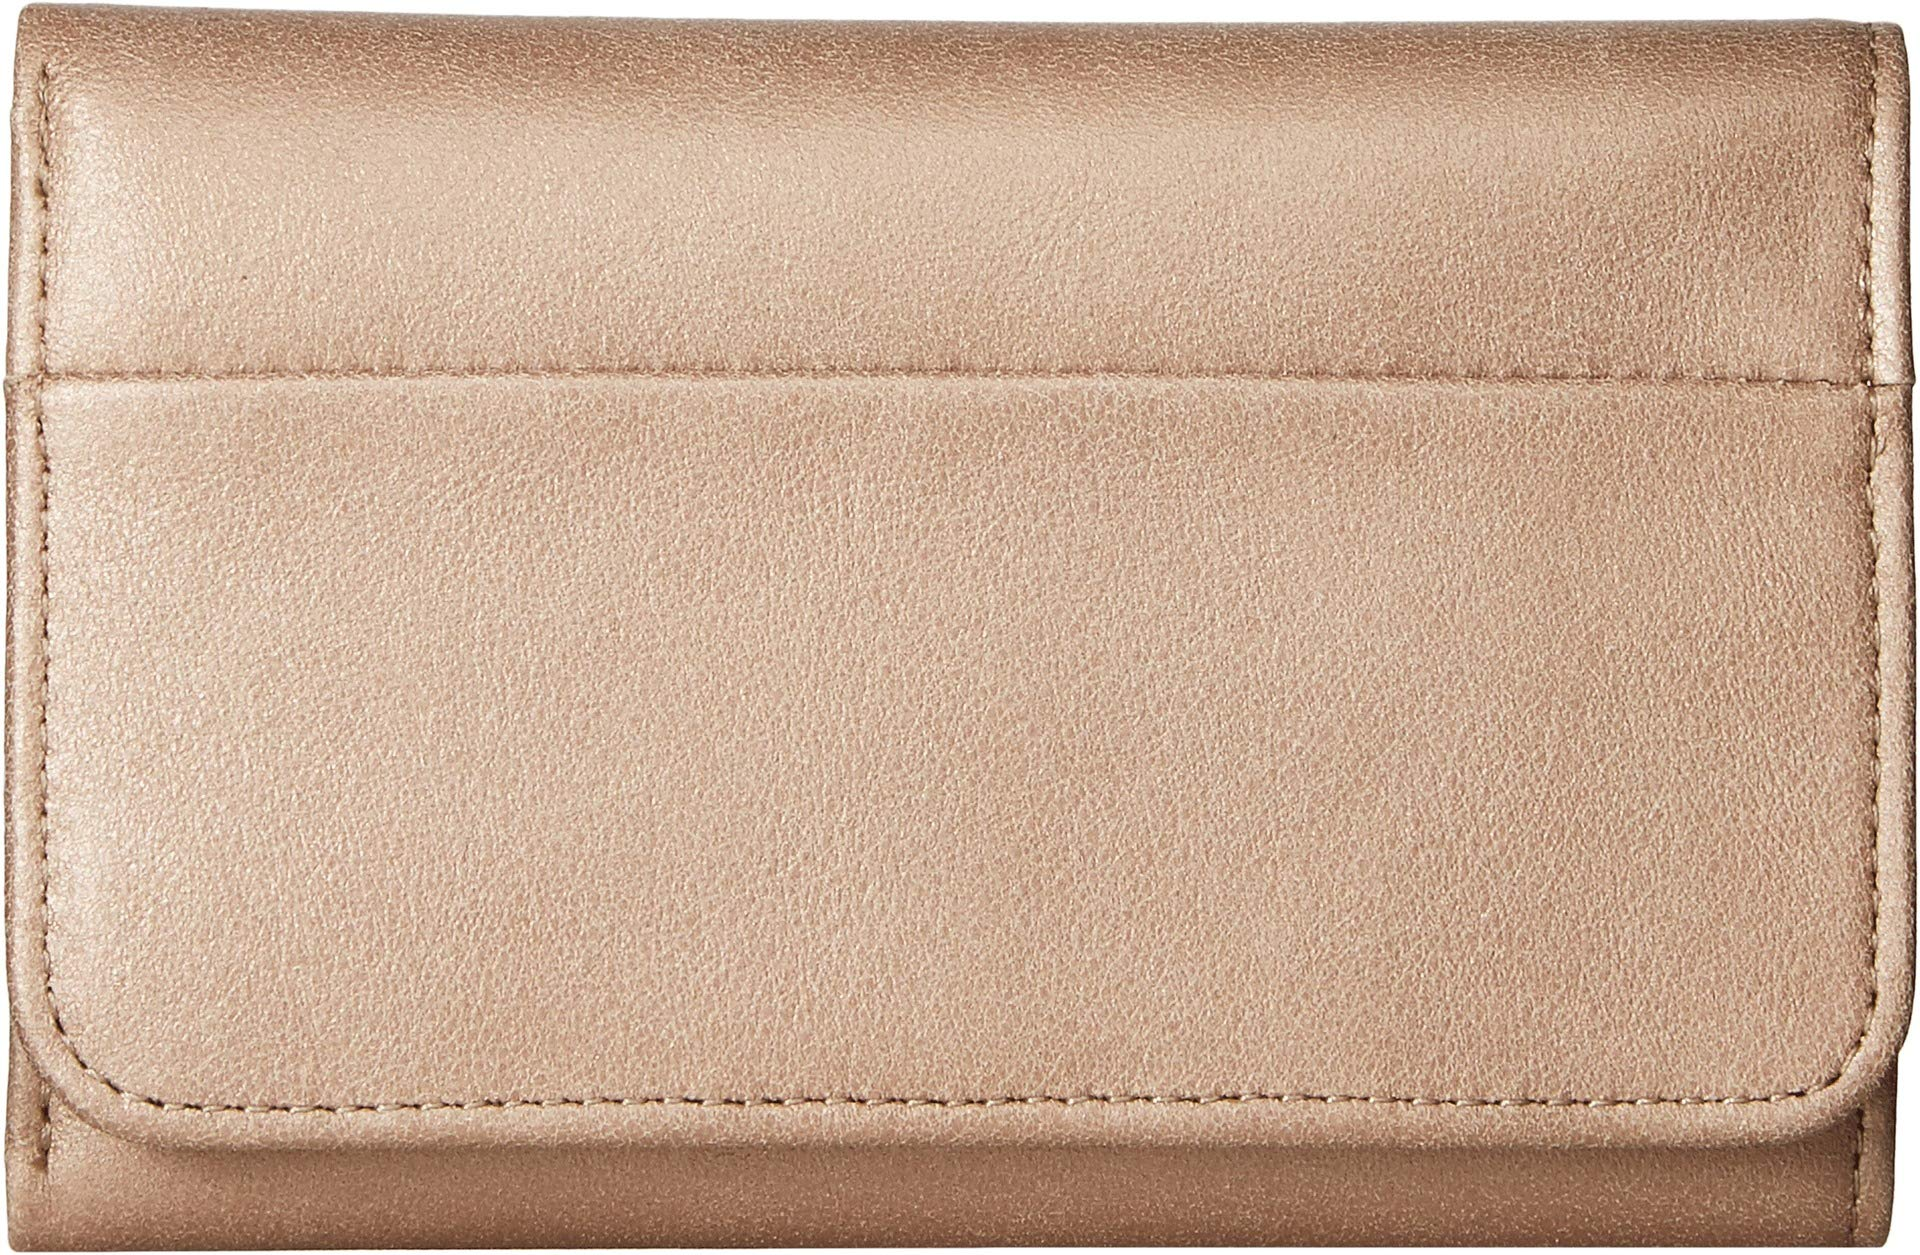 Hobo Women's Jill Trifold Wallet Twilight One Size